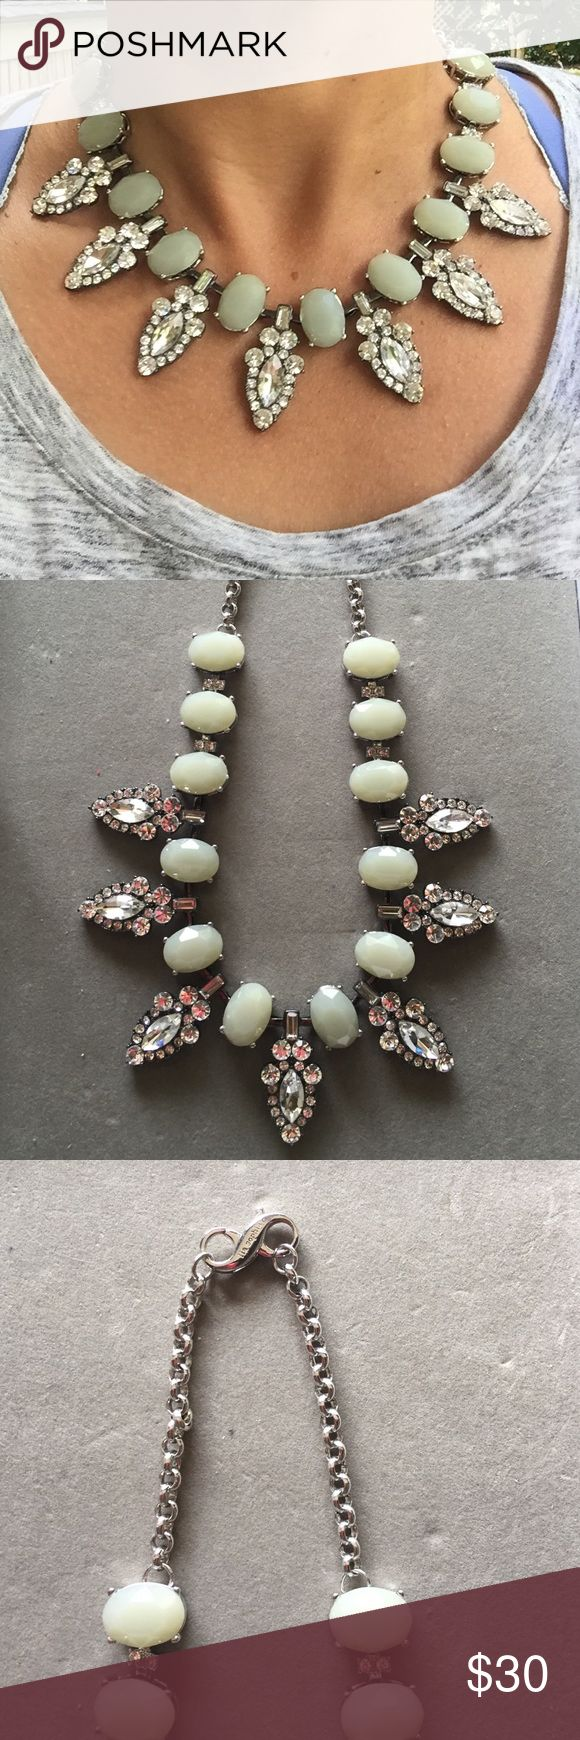 "Lia Sophia necklace 42"" statement piece necklace by Lia Sophia Lia Sophia Jewelry Necklaces"